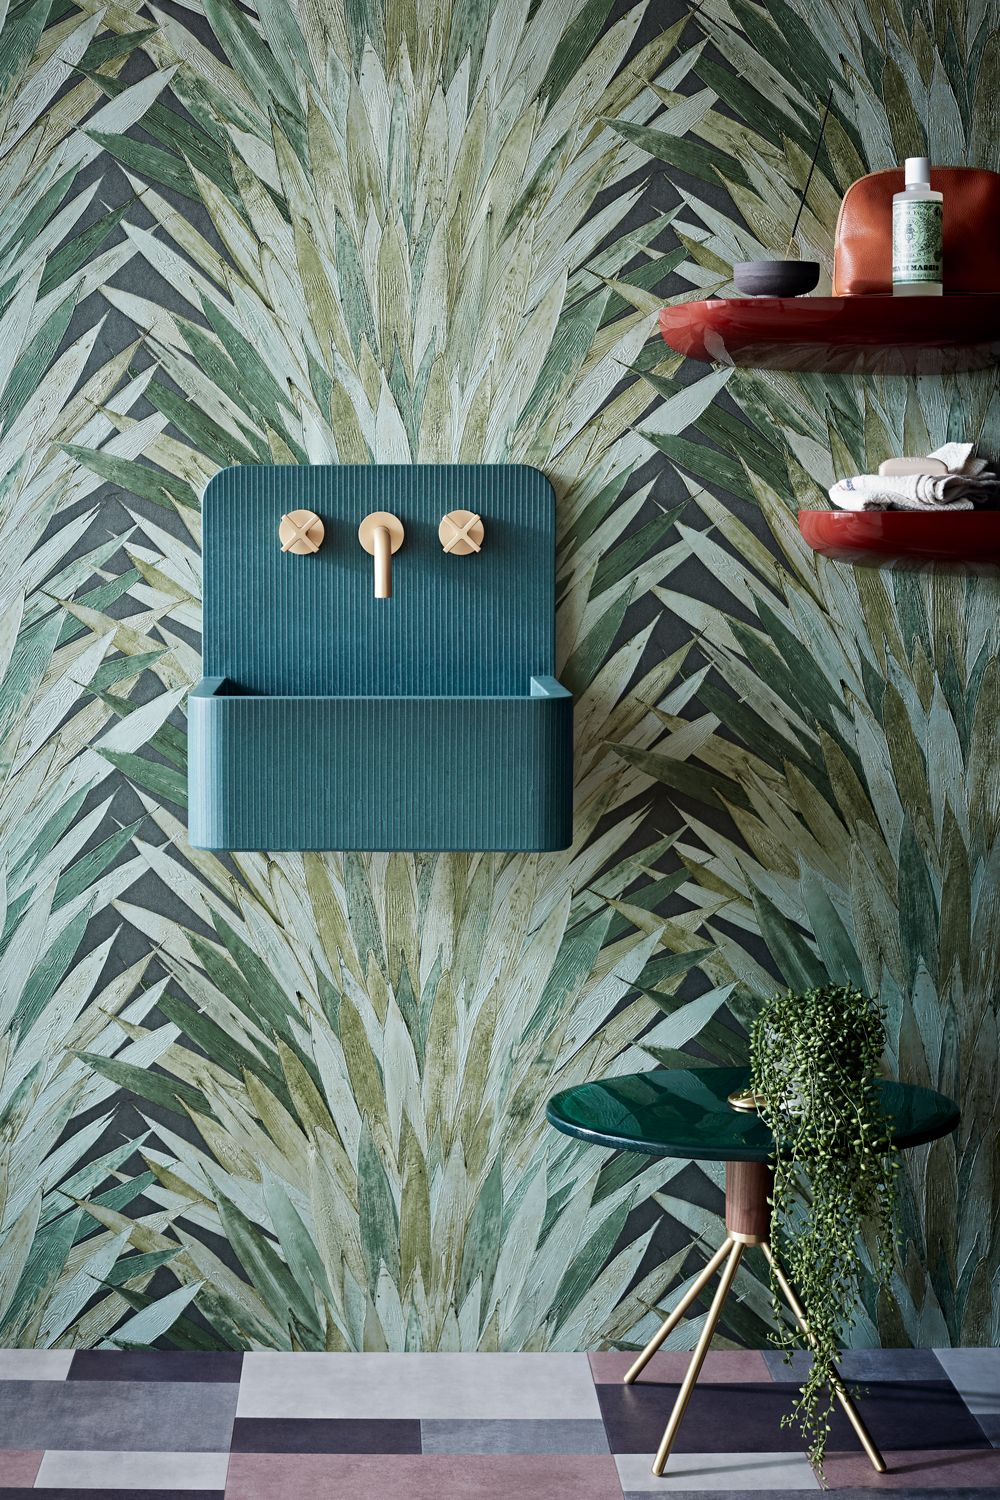 The New Tropical Decorating Trend: Tropical Minimalism